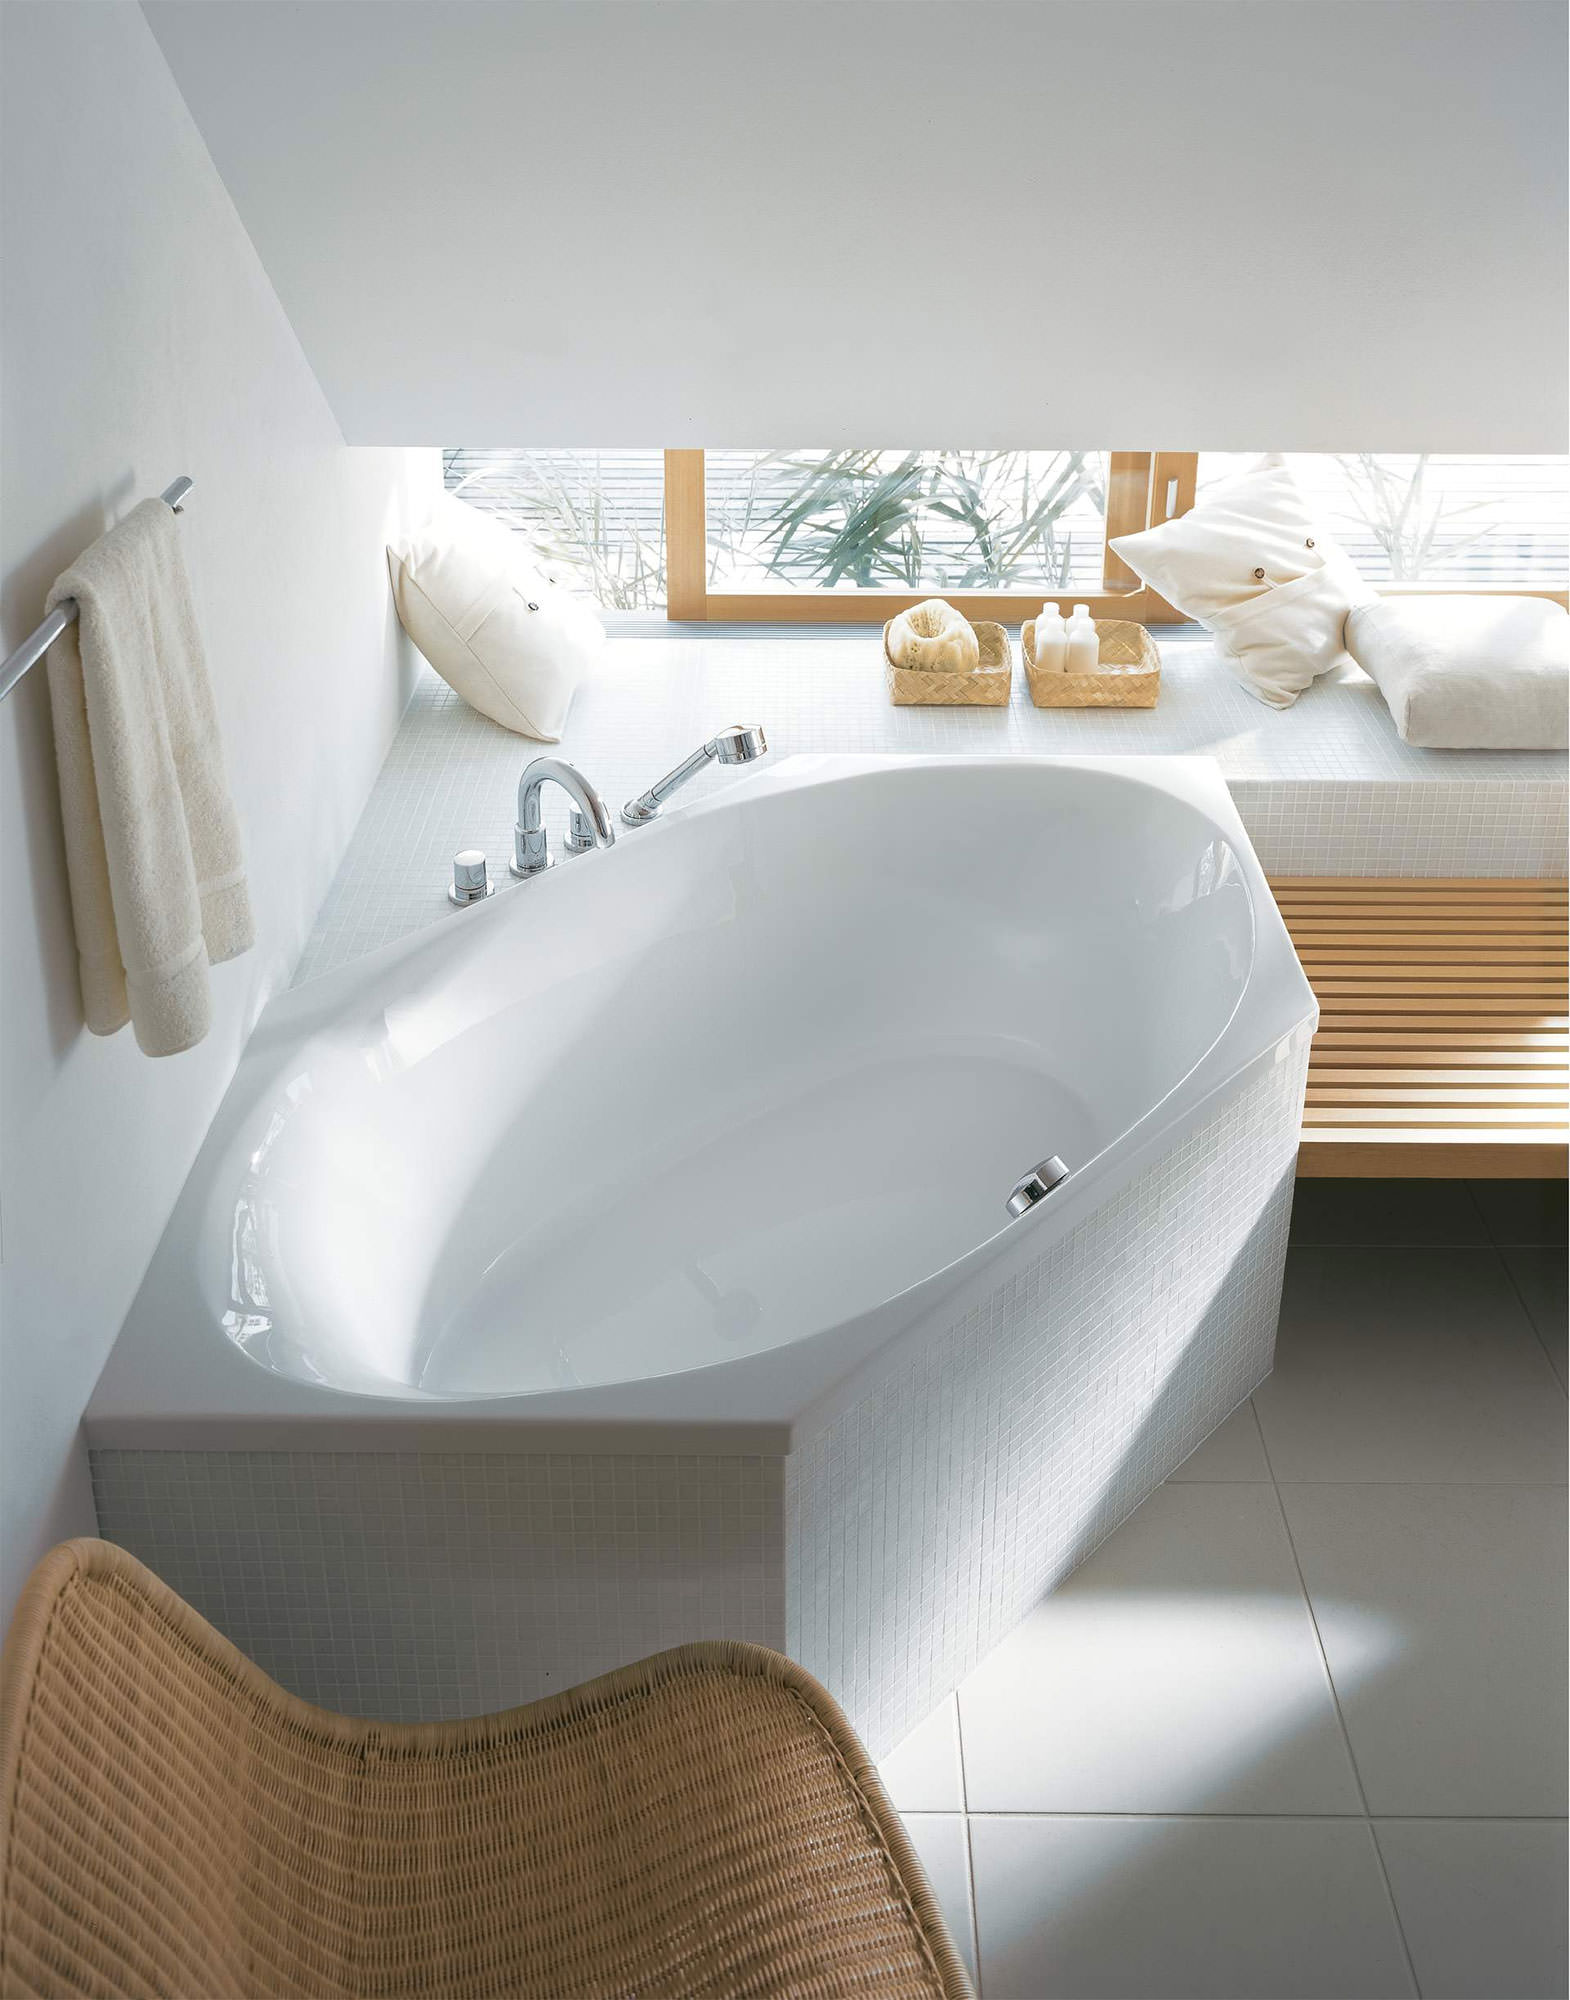 Duravit 2x3 Hexagonal 1900 x 900mm Bathtub With Frame